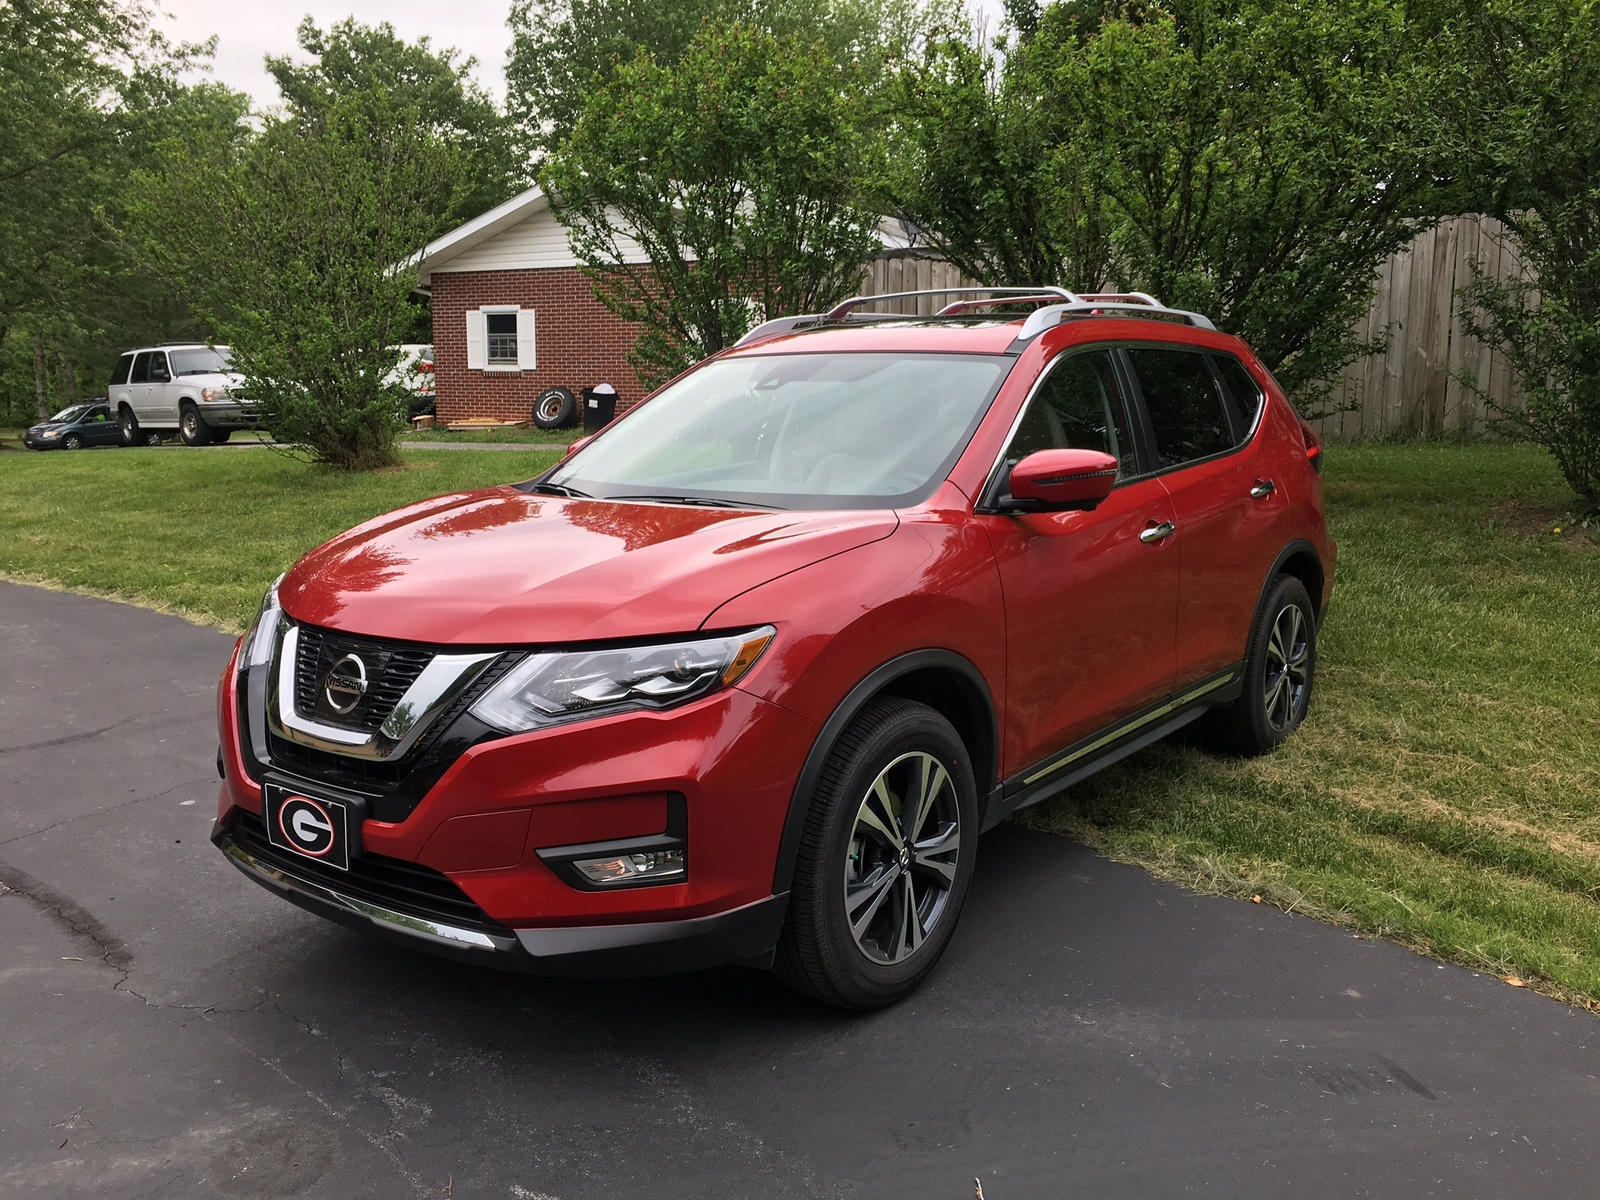 Picture of 2017 Nissan Rogue SL AWD